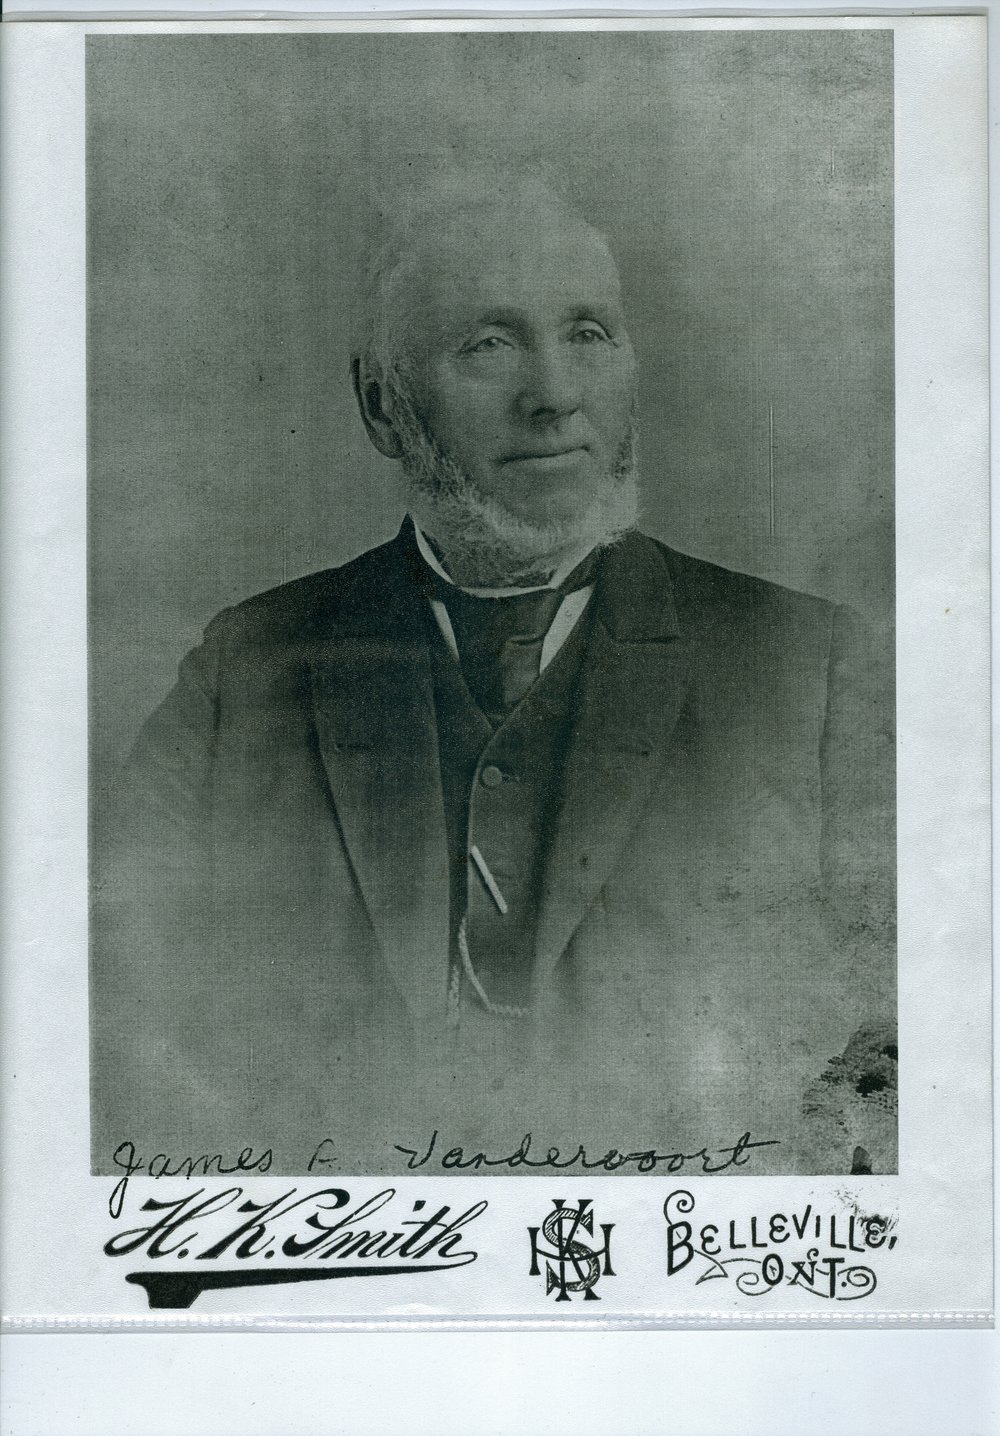 James A. Vandervoot